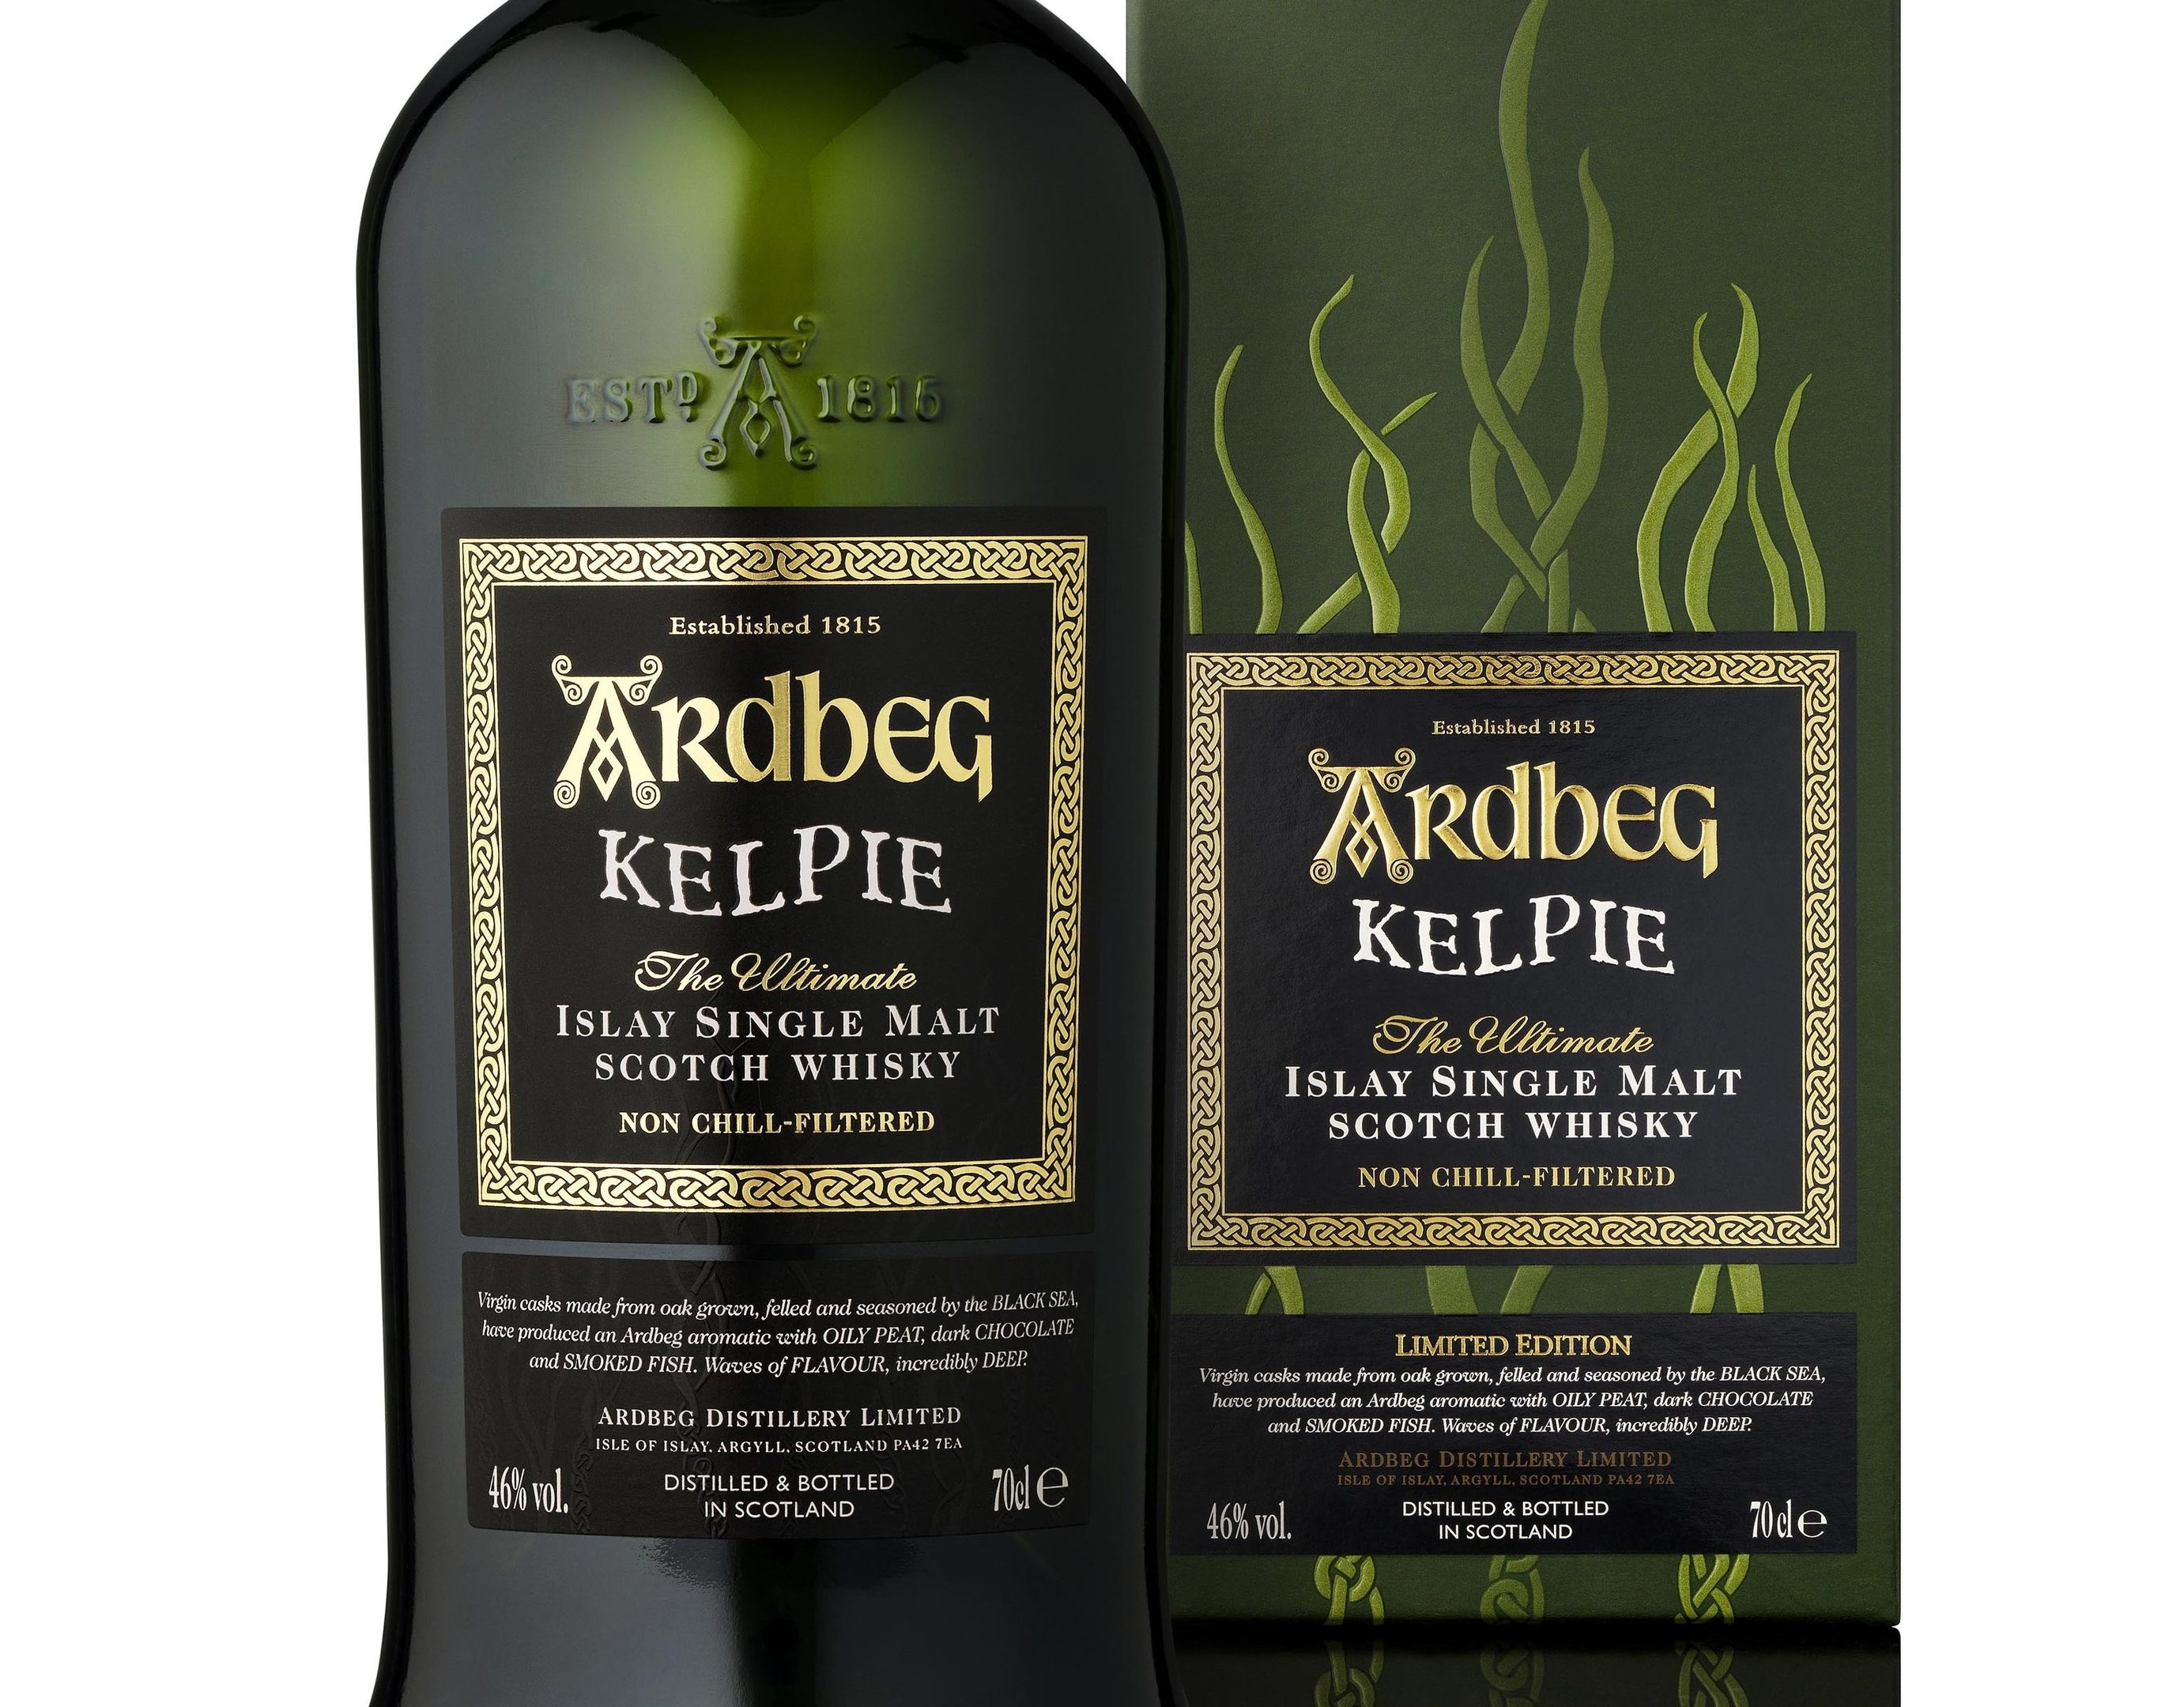 Ardbeg Kelpie took the top award at the International Whisky Competition.